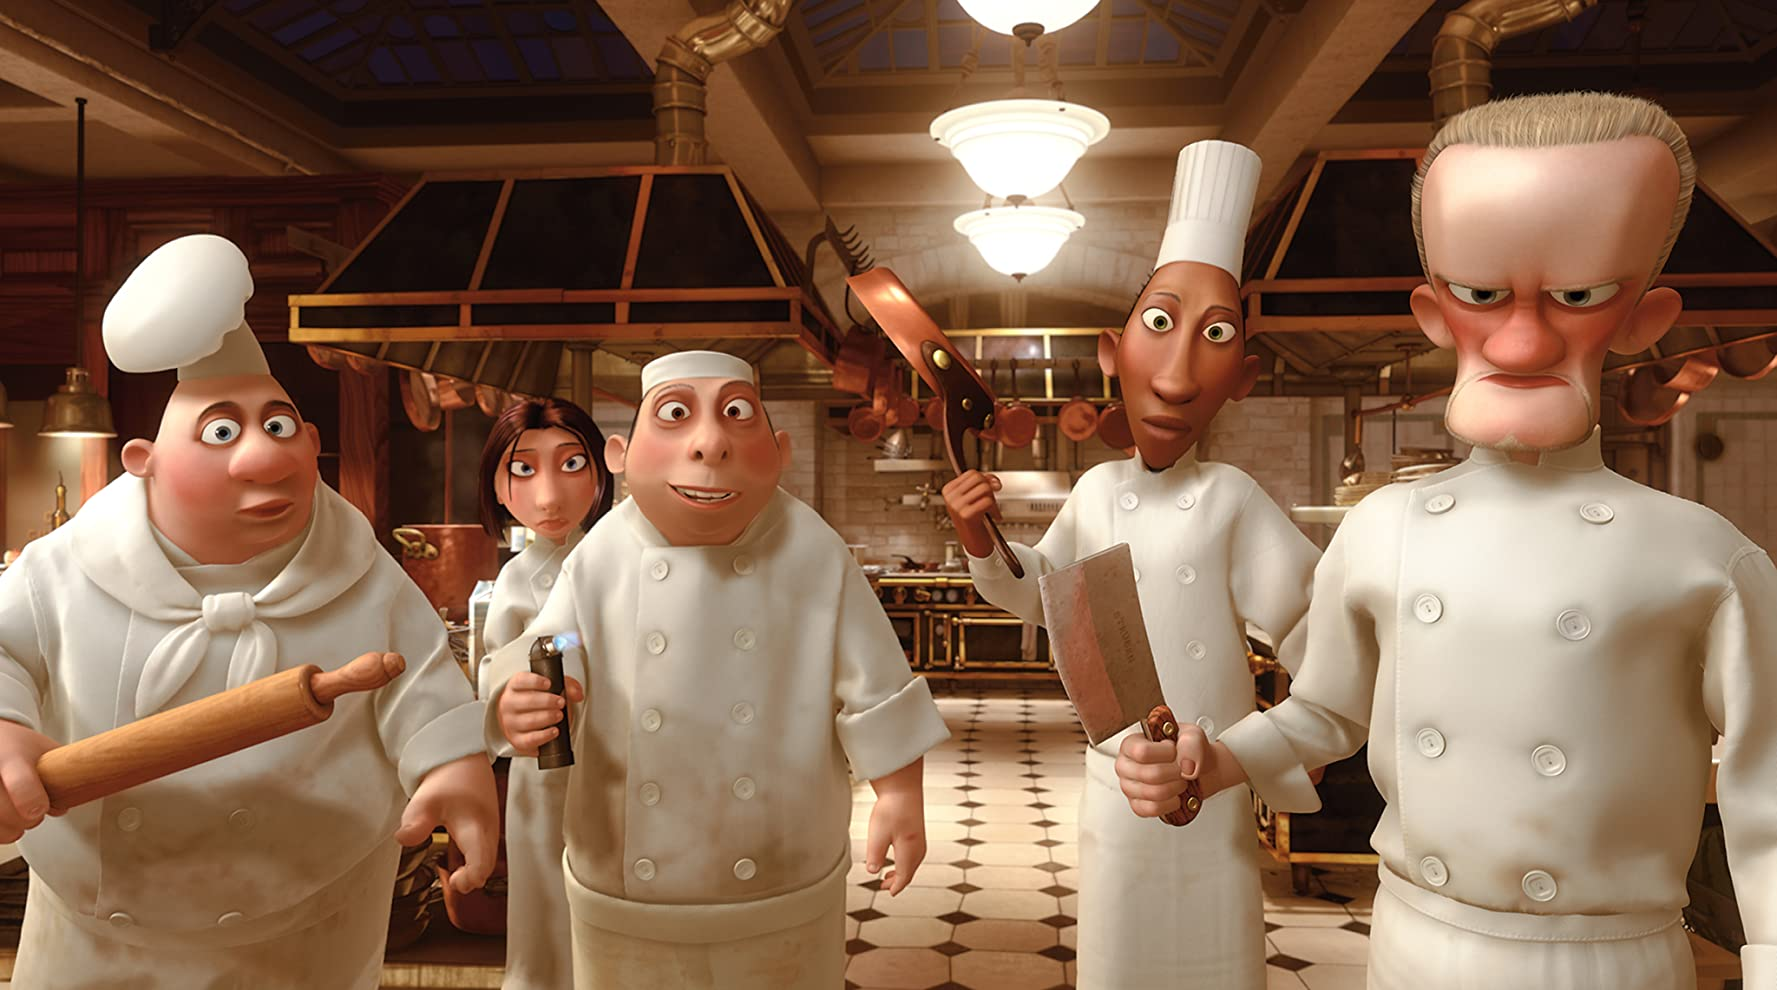 Janeane Garofalo, James Remar, Will Arnett, Tony Fucile, and Julius Callahan in Ratatouille (2007)